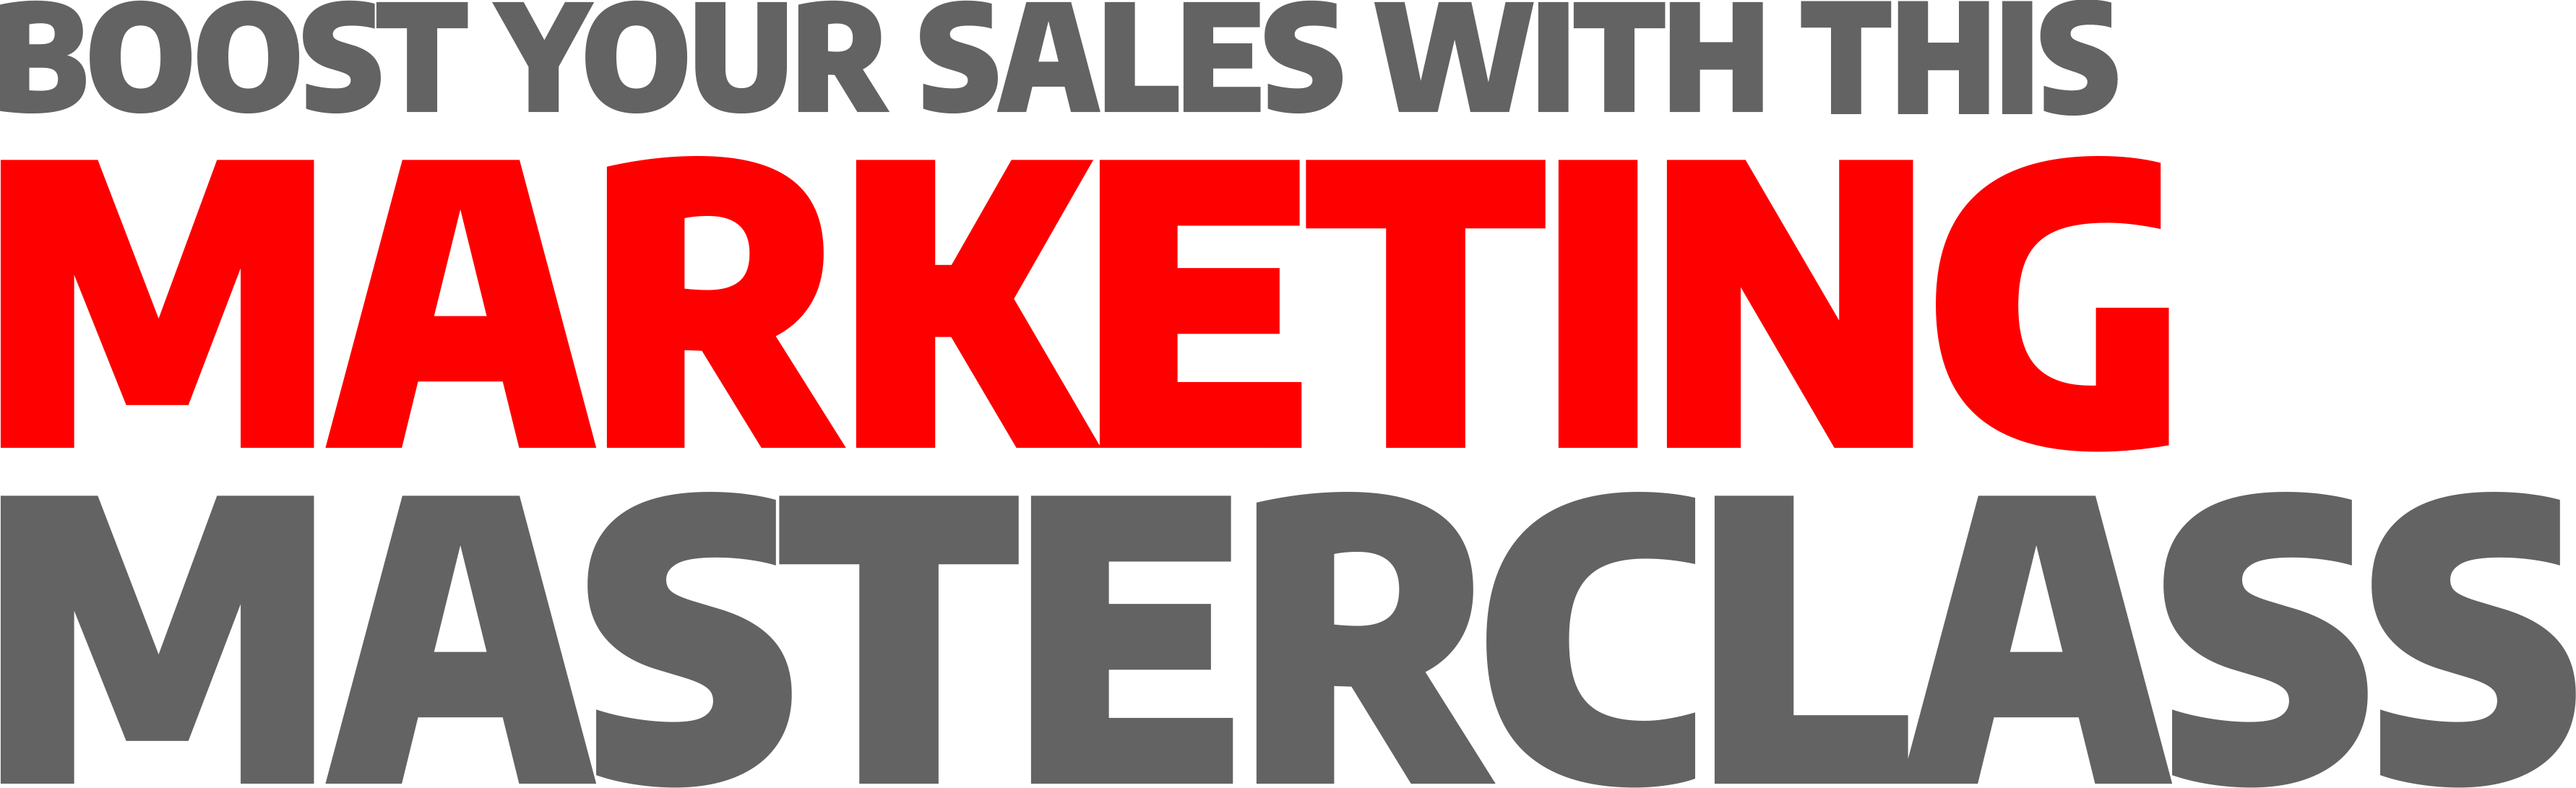 Boost Your Sales with our Marketing Masterclass